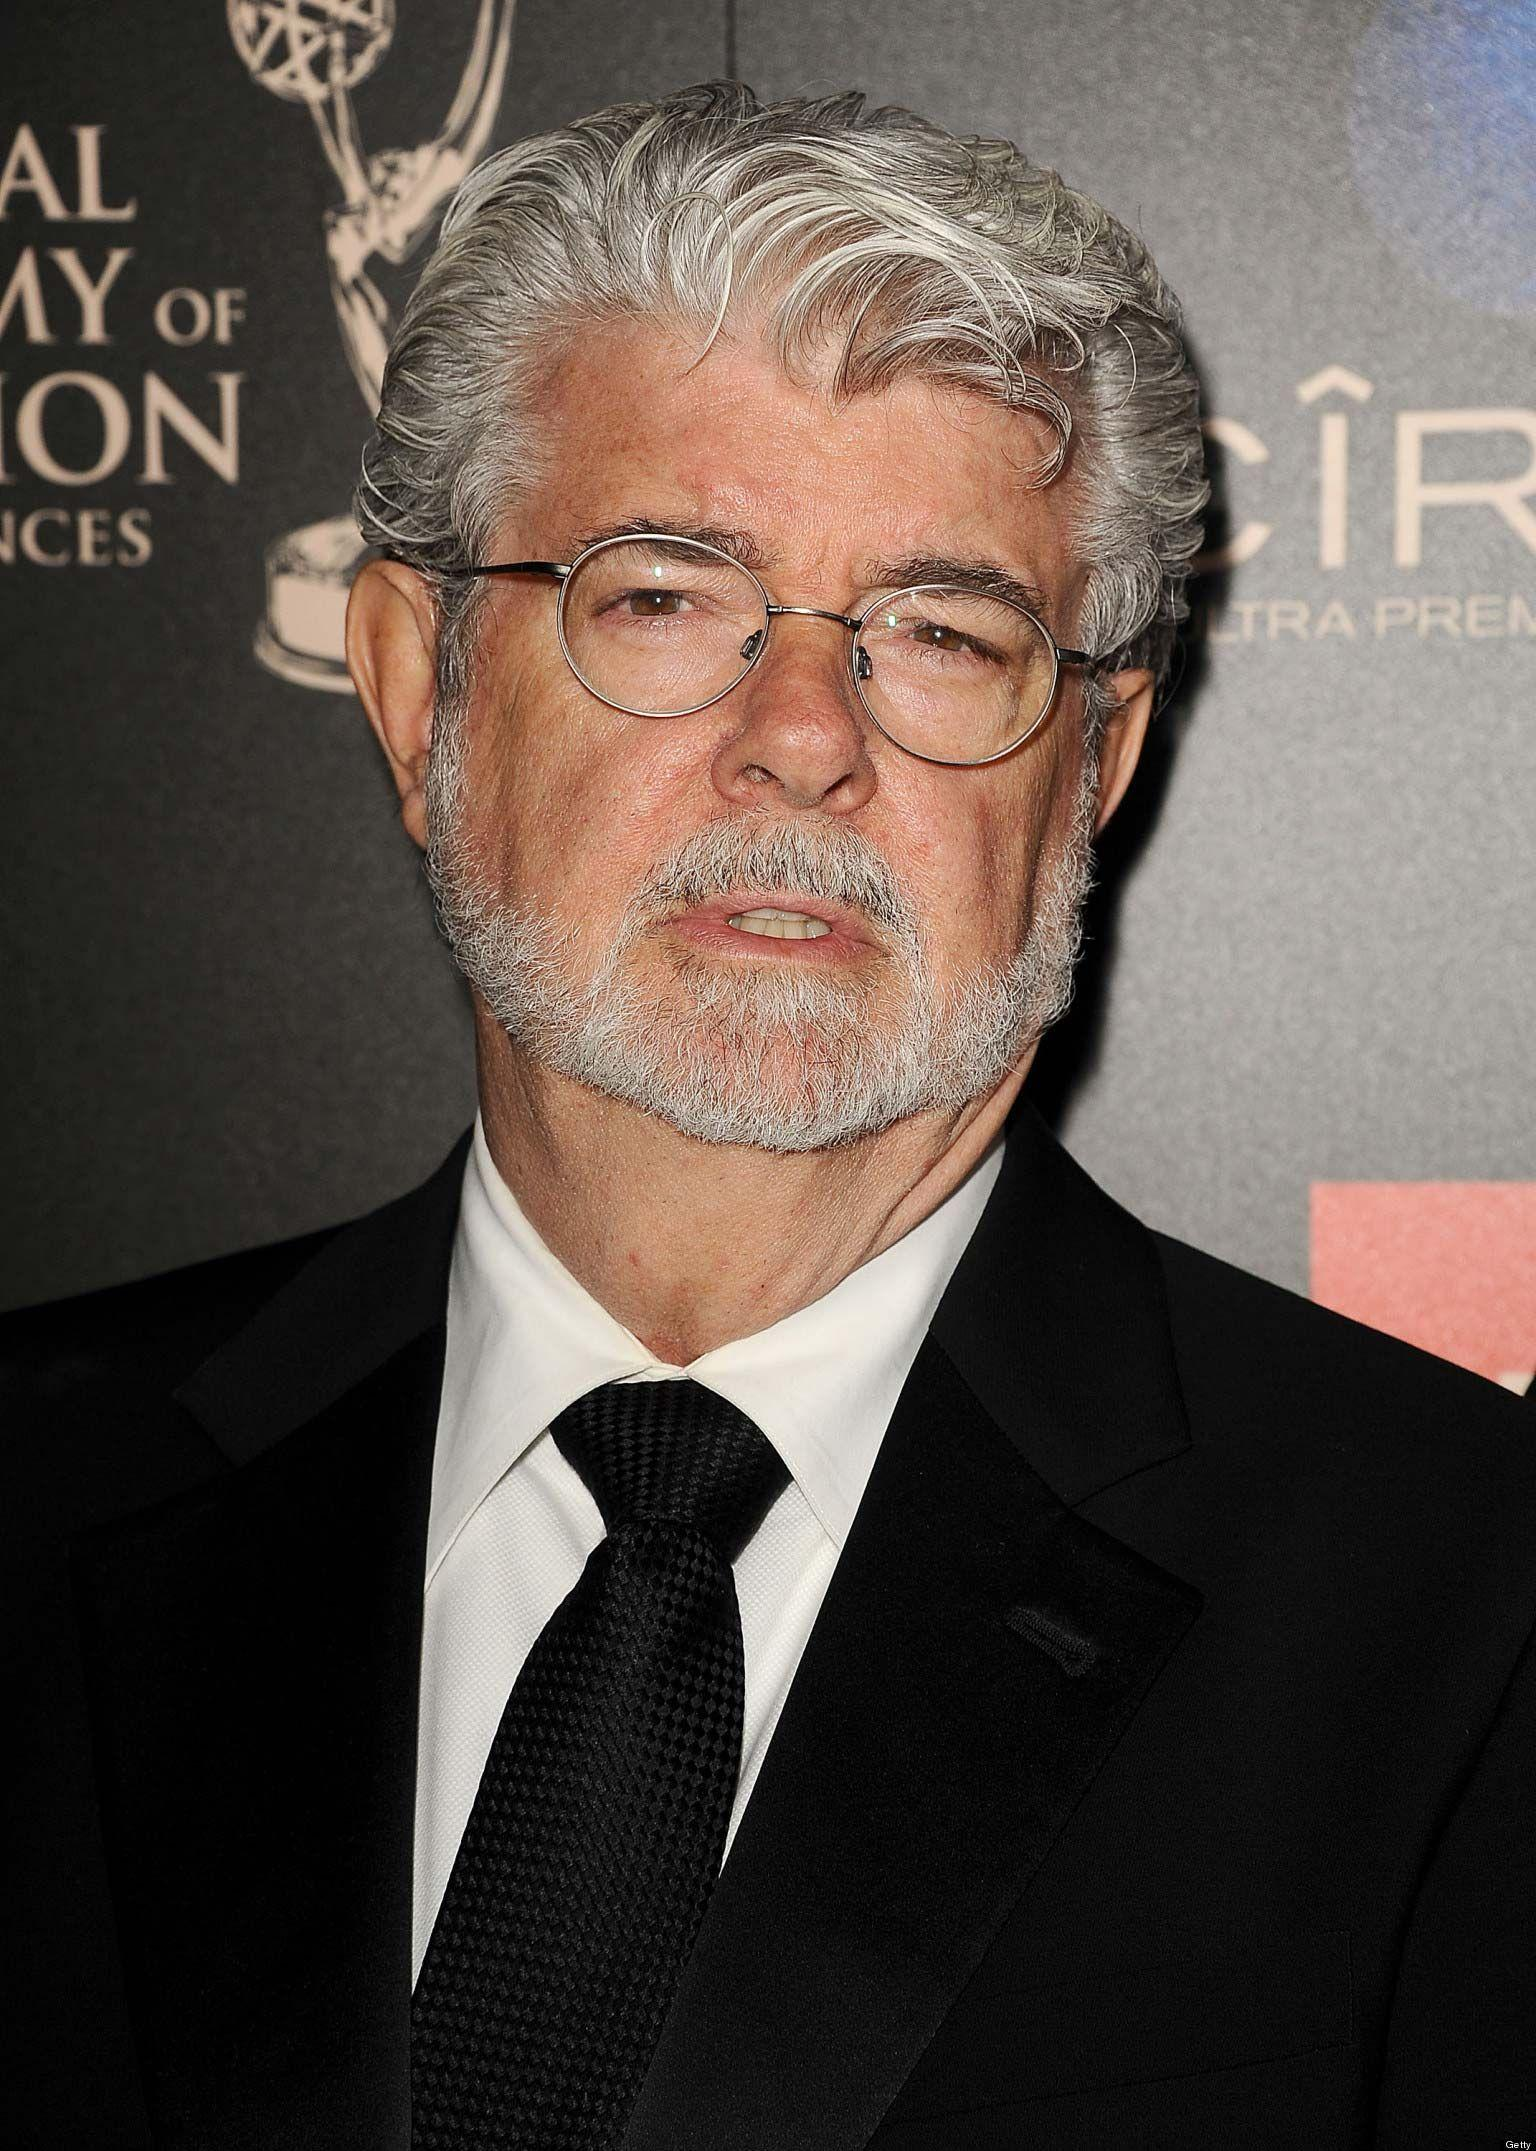 George lucas owns the universe